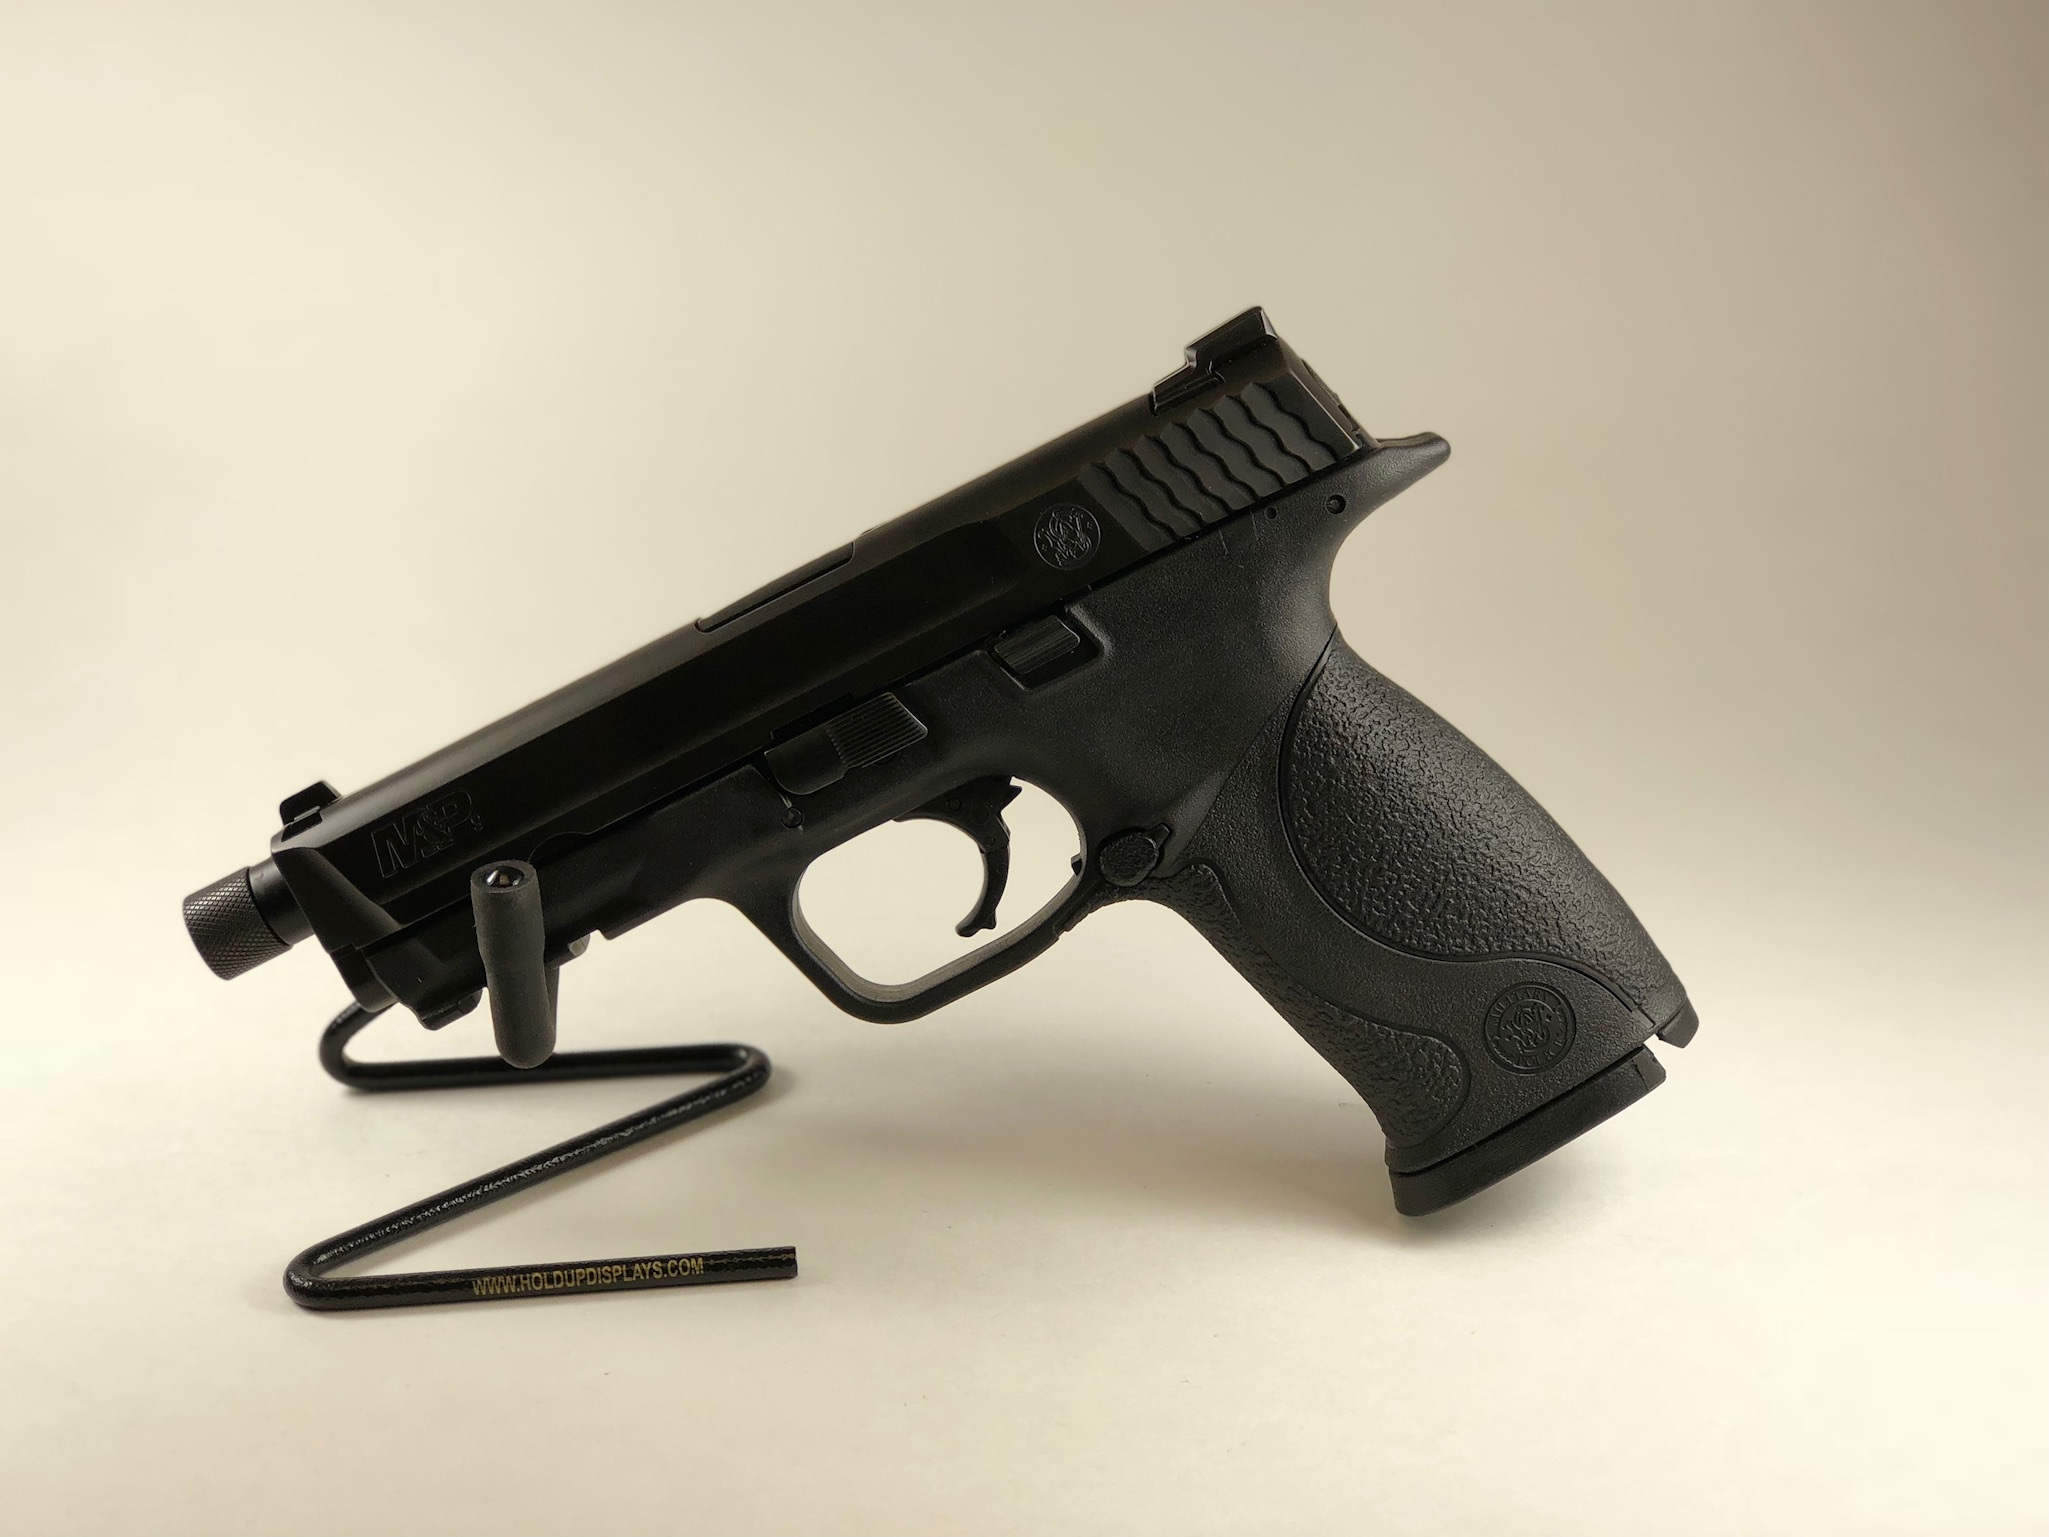 SMITH & WESSON M&P 9 Threaded Barrel w/ 1 Mag 17+1 Pre Owned